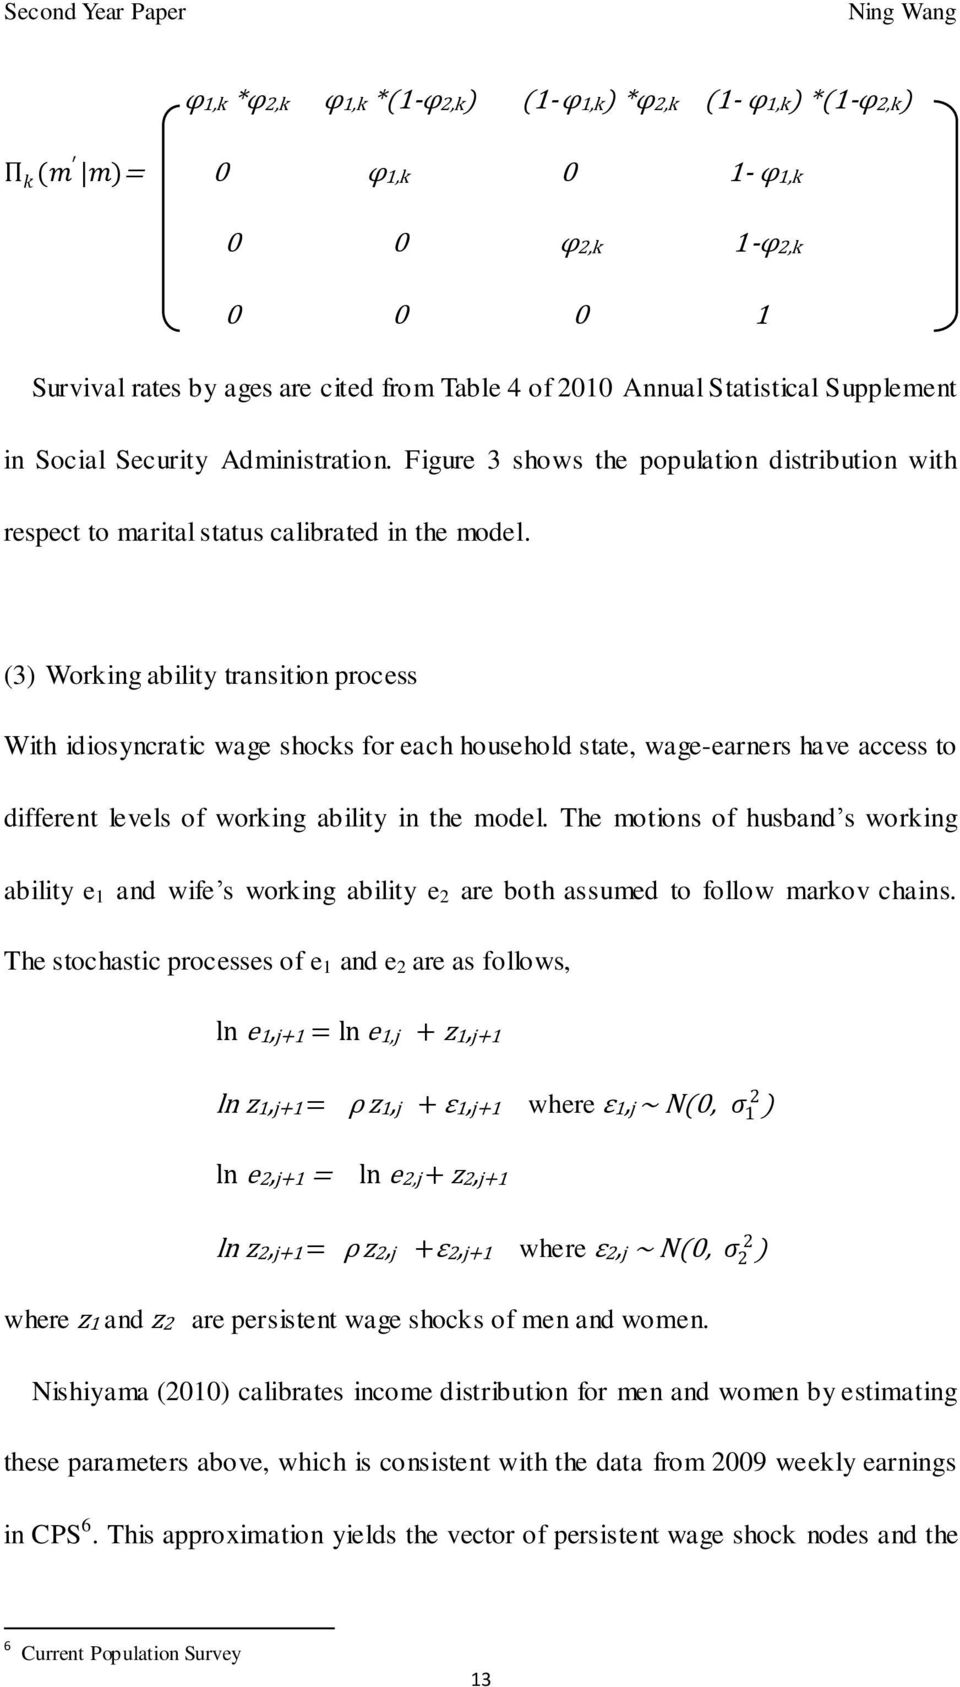 (3) Working ability transition process With idiosyncratic wage shocks for each household state, wage-earners have access to different levels of working ability in the model.